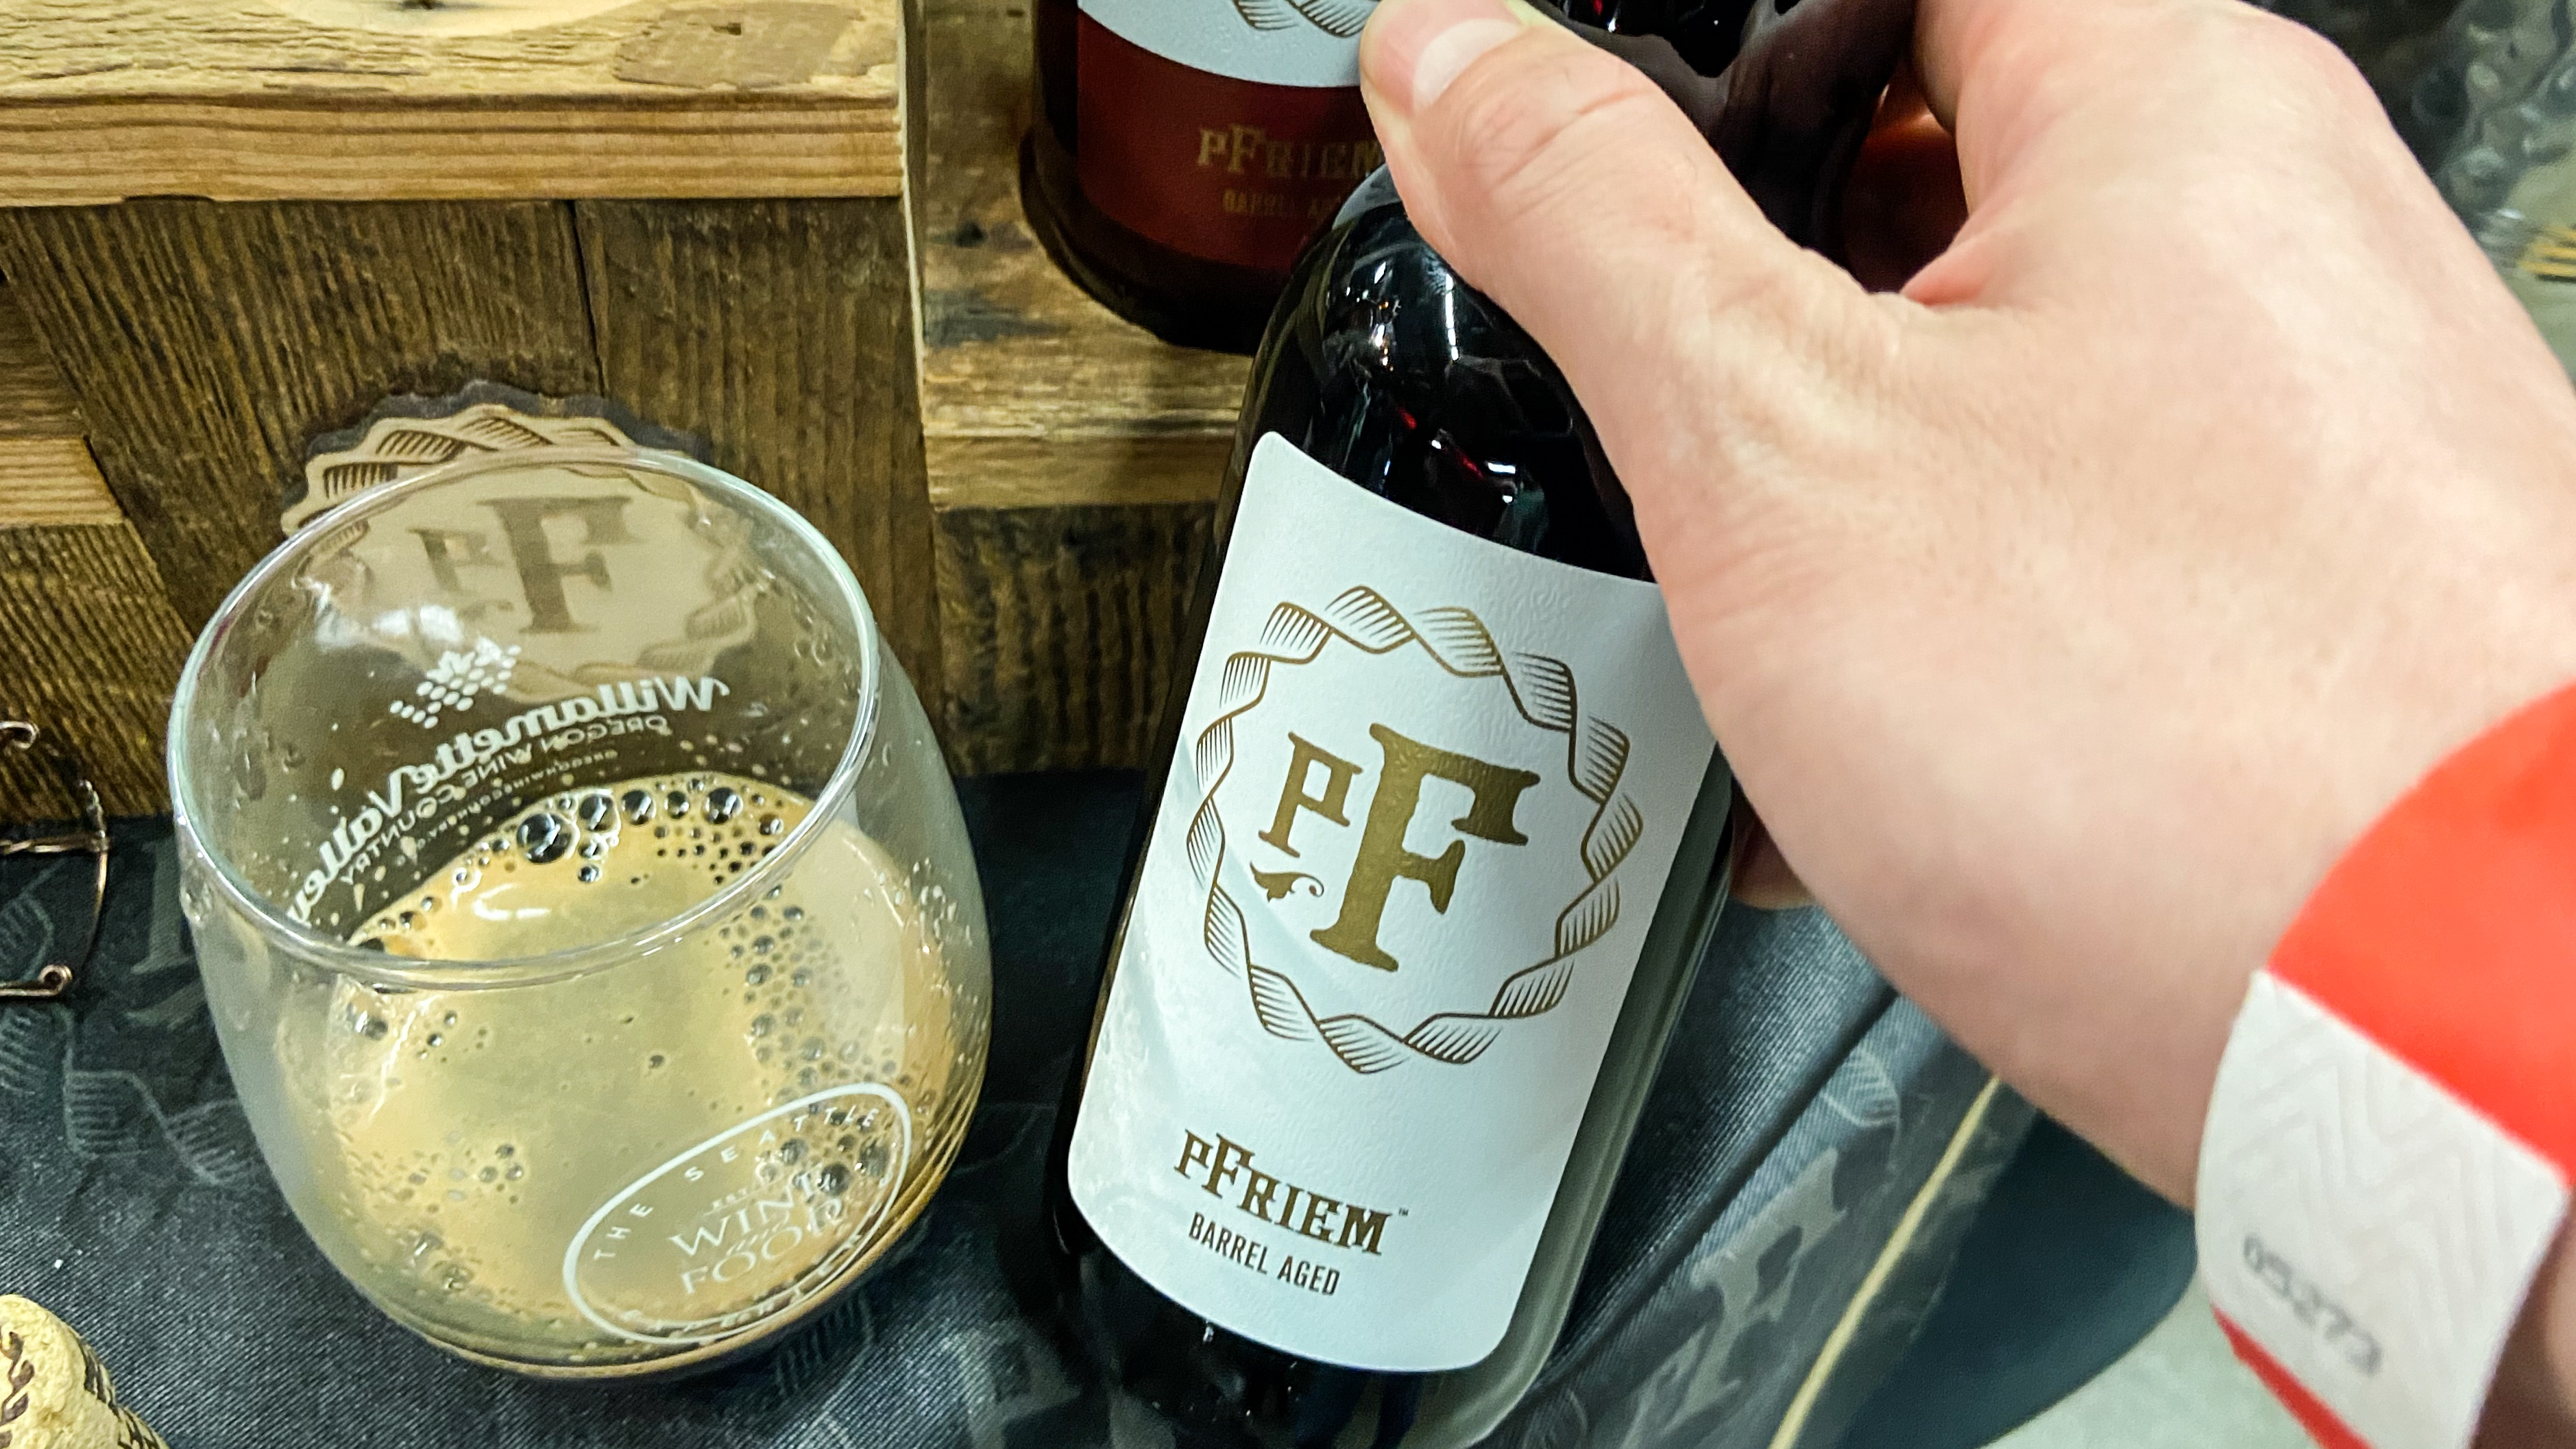 pFriem Bourbon Barrel-Aged Imperial Stout